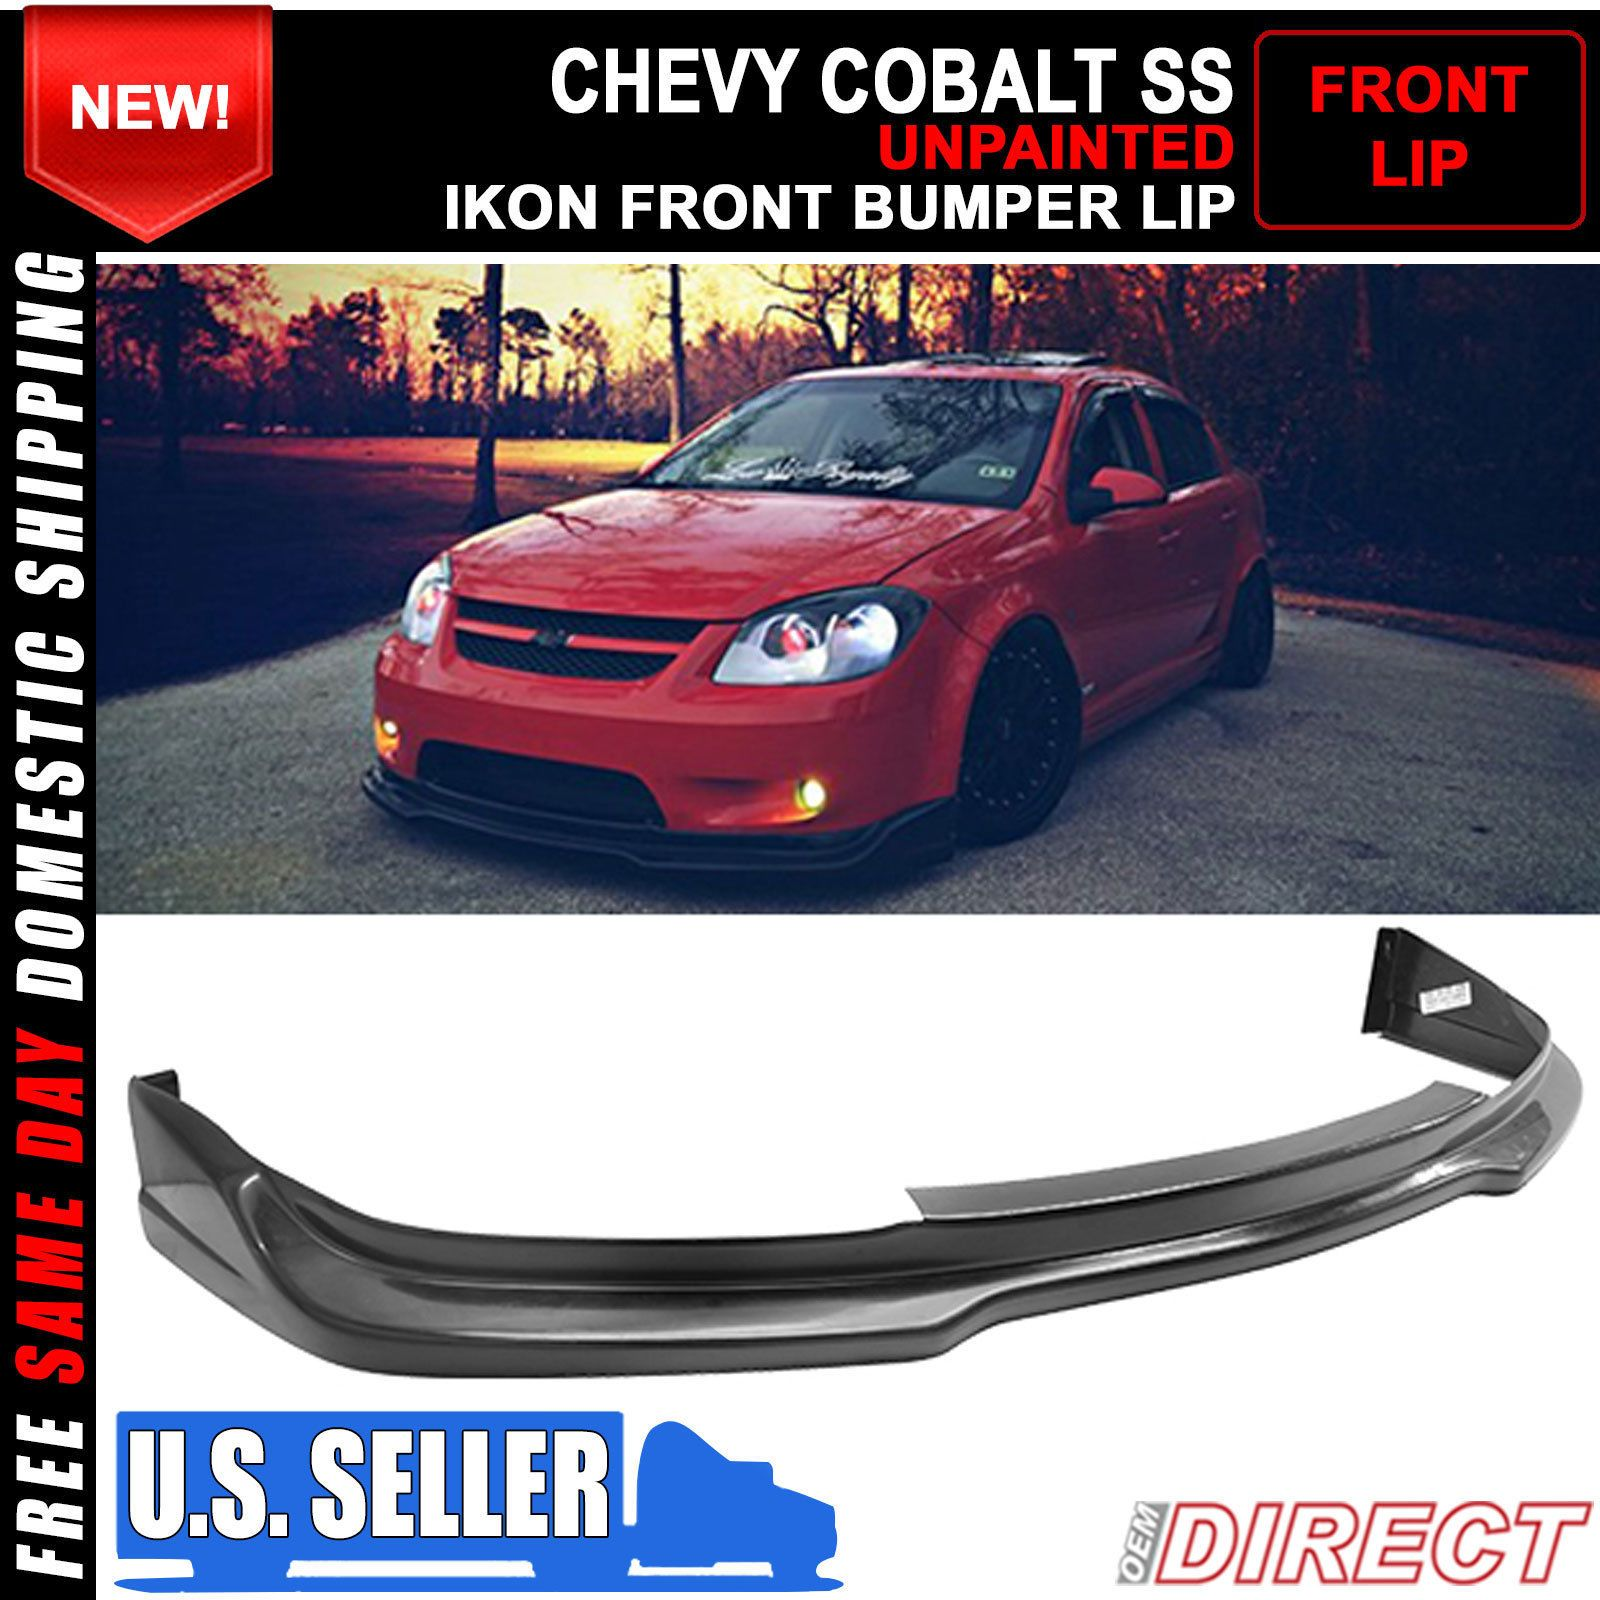 05 10 chevy chevrolet cobalt ss coupe sedan ikon front bumper lip 05 10 chevy chevrolet cobalt ss coupe sedan ikon front bumper lip chin spoiler ebay sciox Gallery